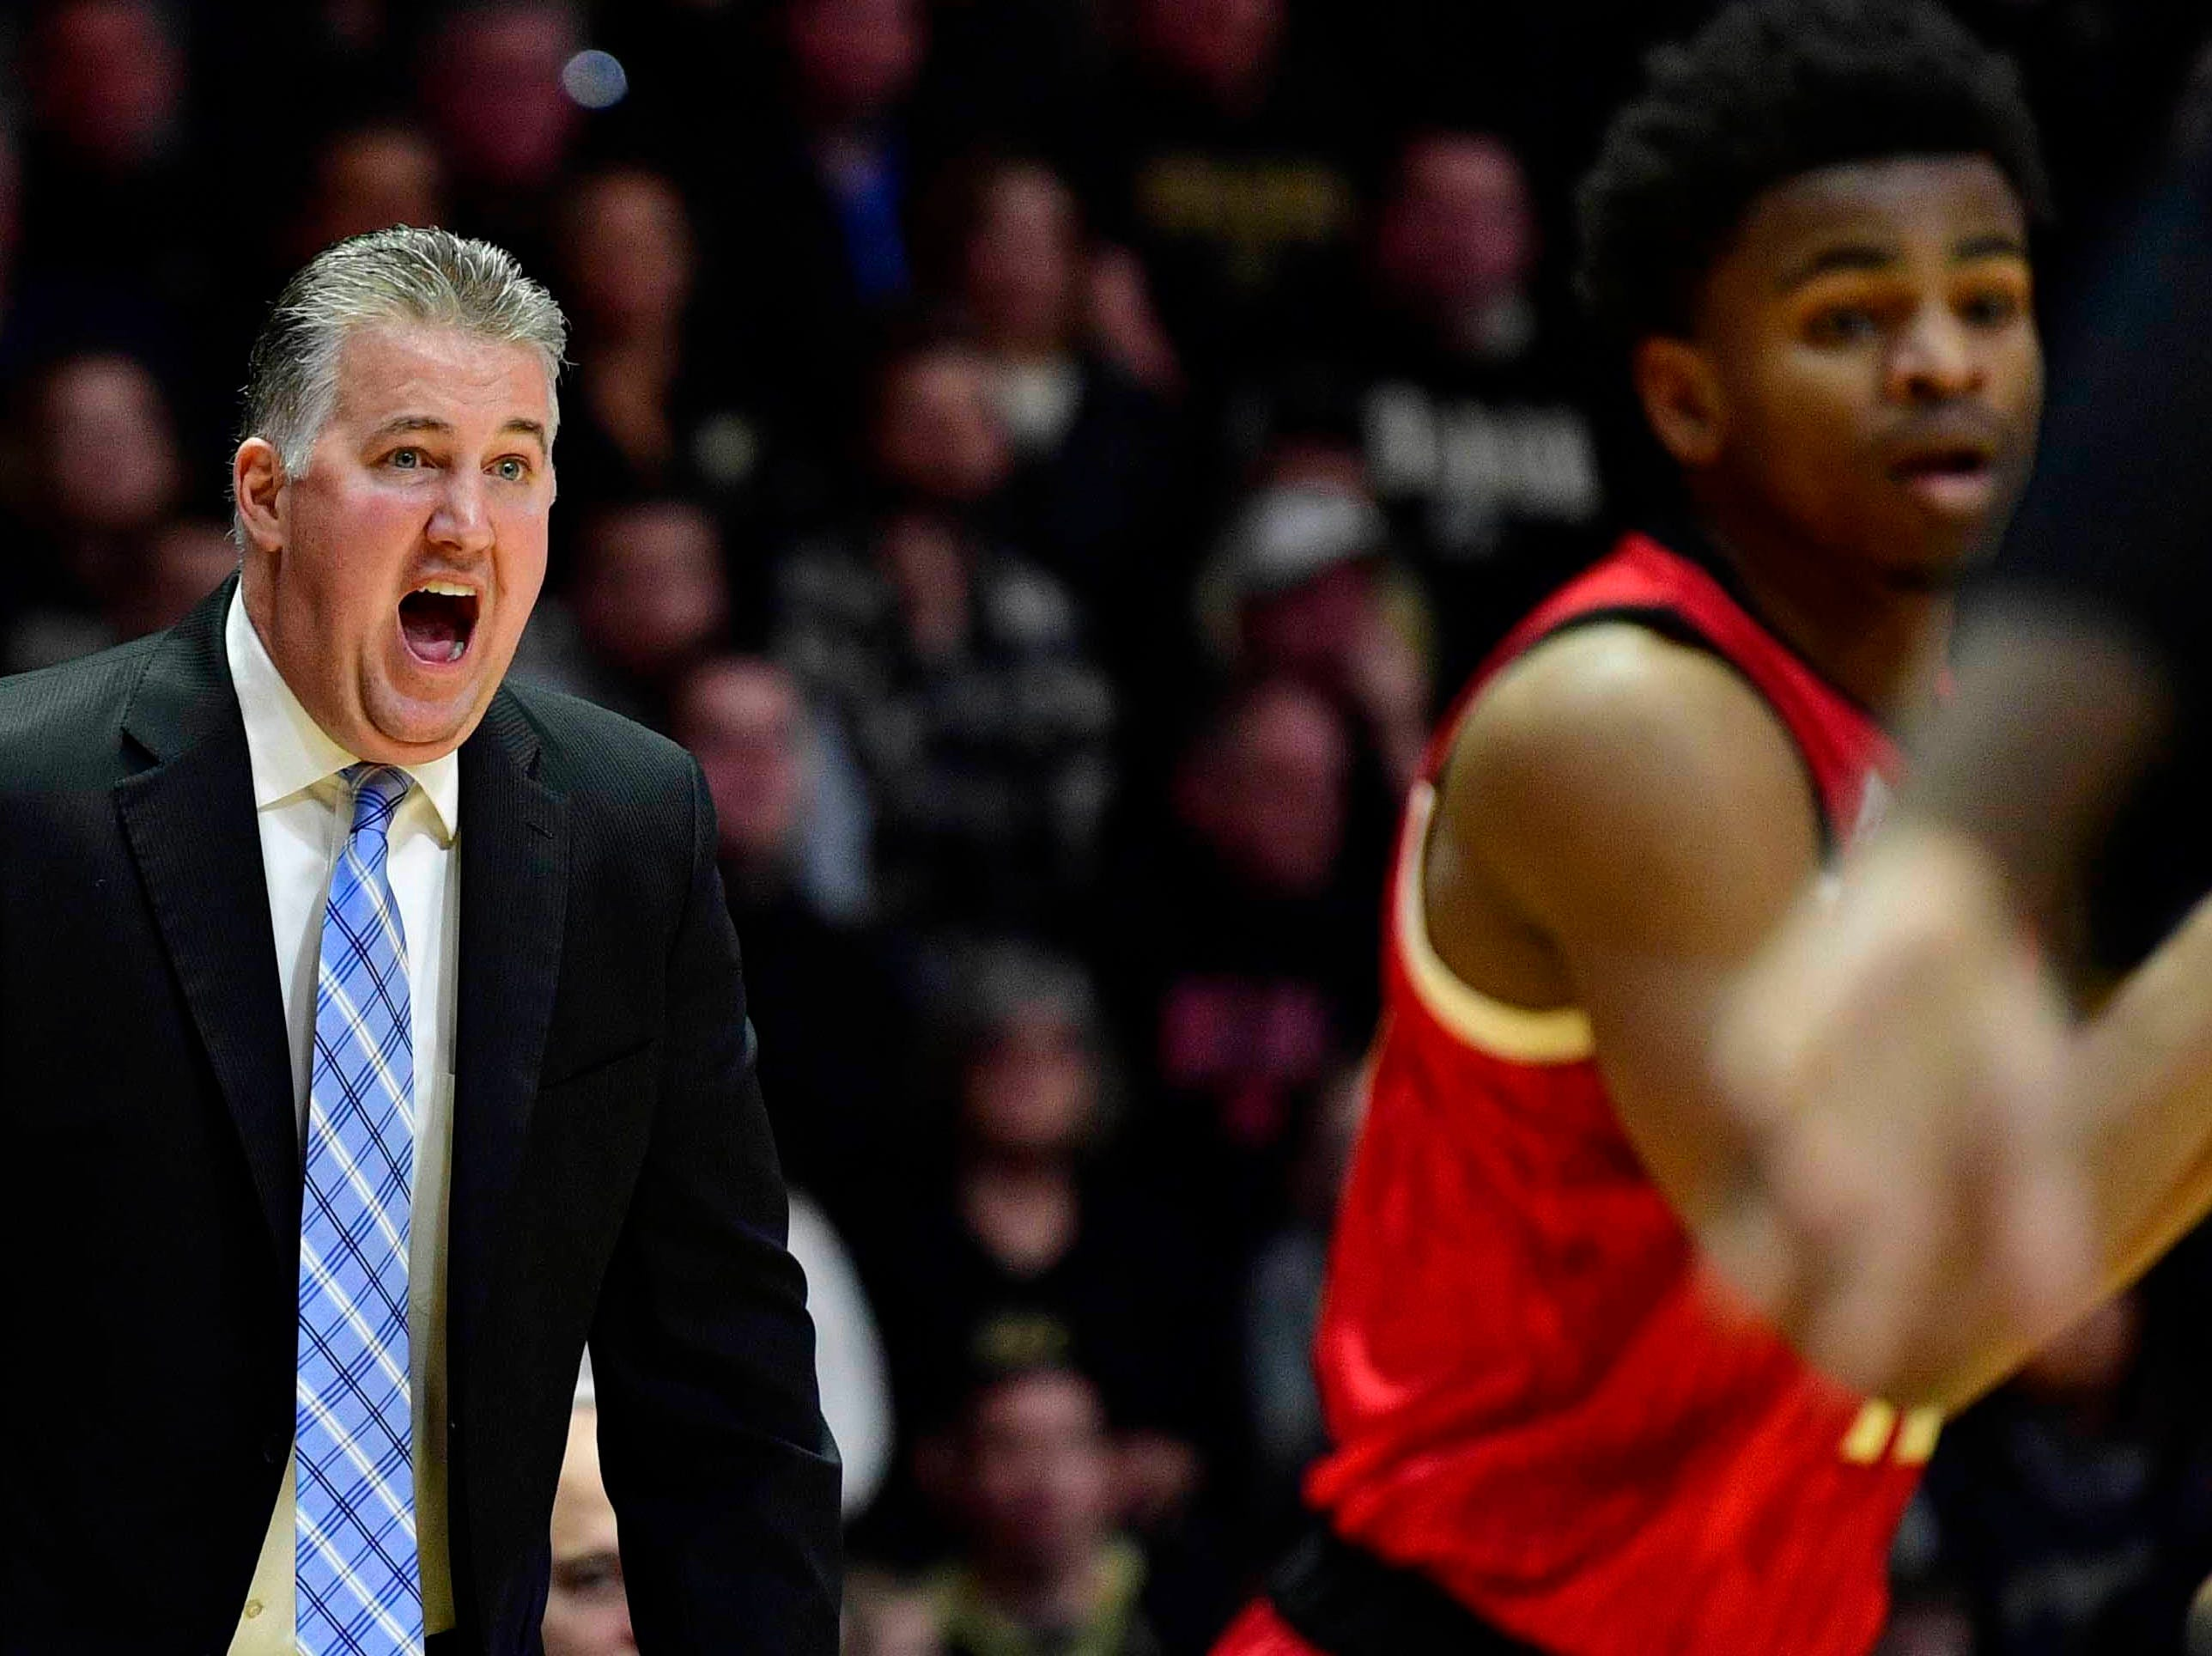 Feb 9, 2019; West Lafayette, IN, USA; Purdue Boilermakers head coach Matt Painter yells at his team during the first half of the game against the Nebraska Cornhuskers at Mackey Arena. Mandatory Credit: Marc Lebryk-USA TODAY Sports